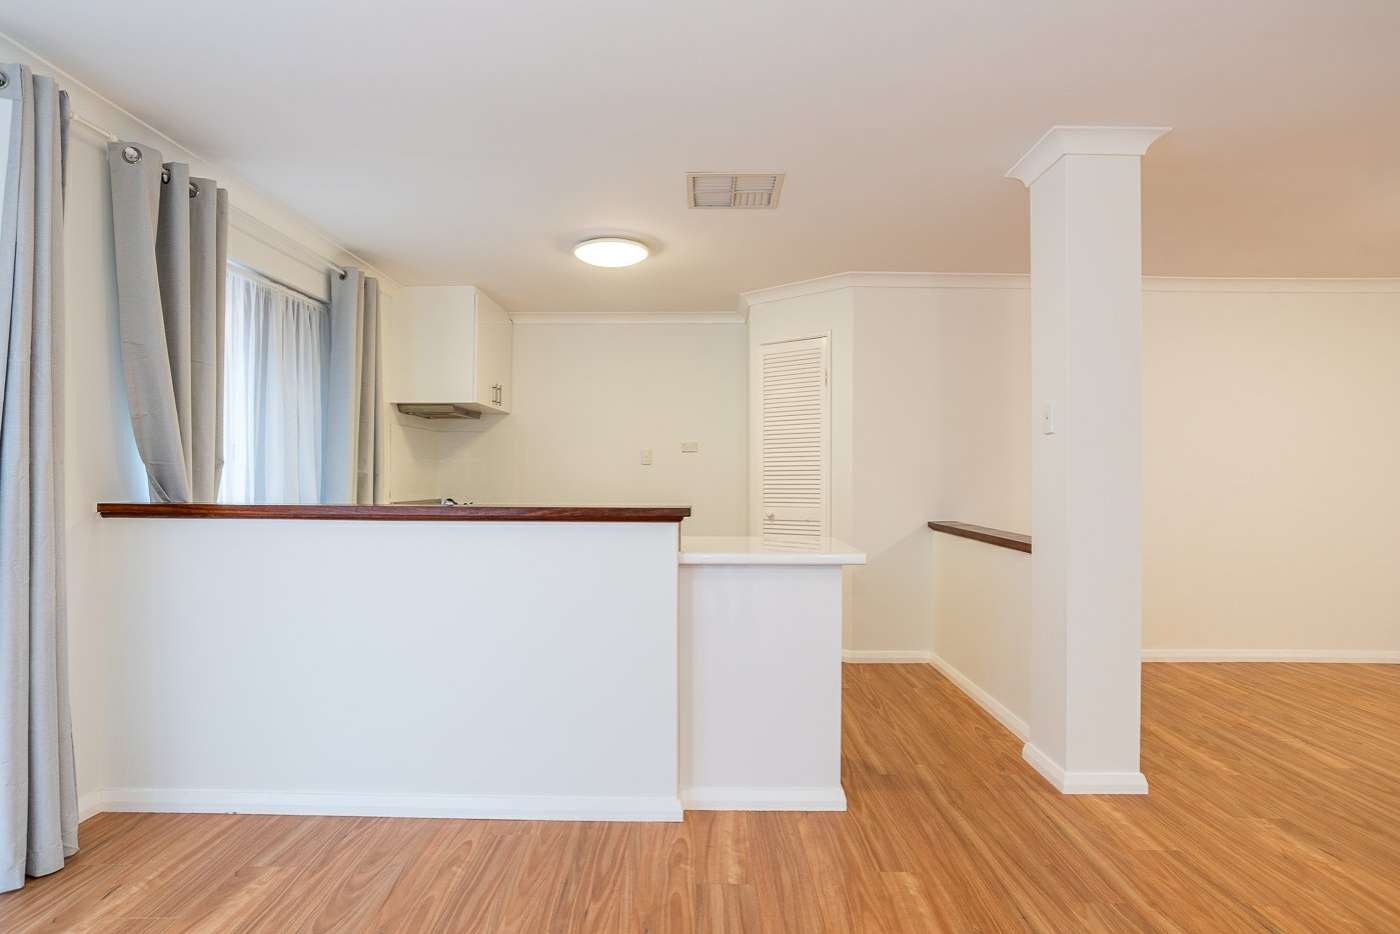 Seventh view of Homely house listing, 3 Mary Mackillop Glen, Queens Park WA 6107